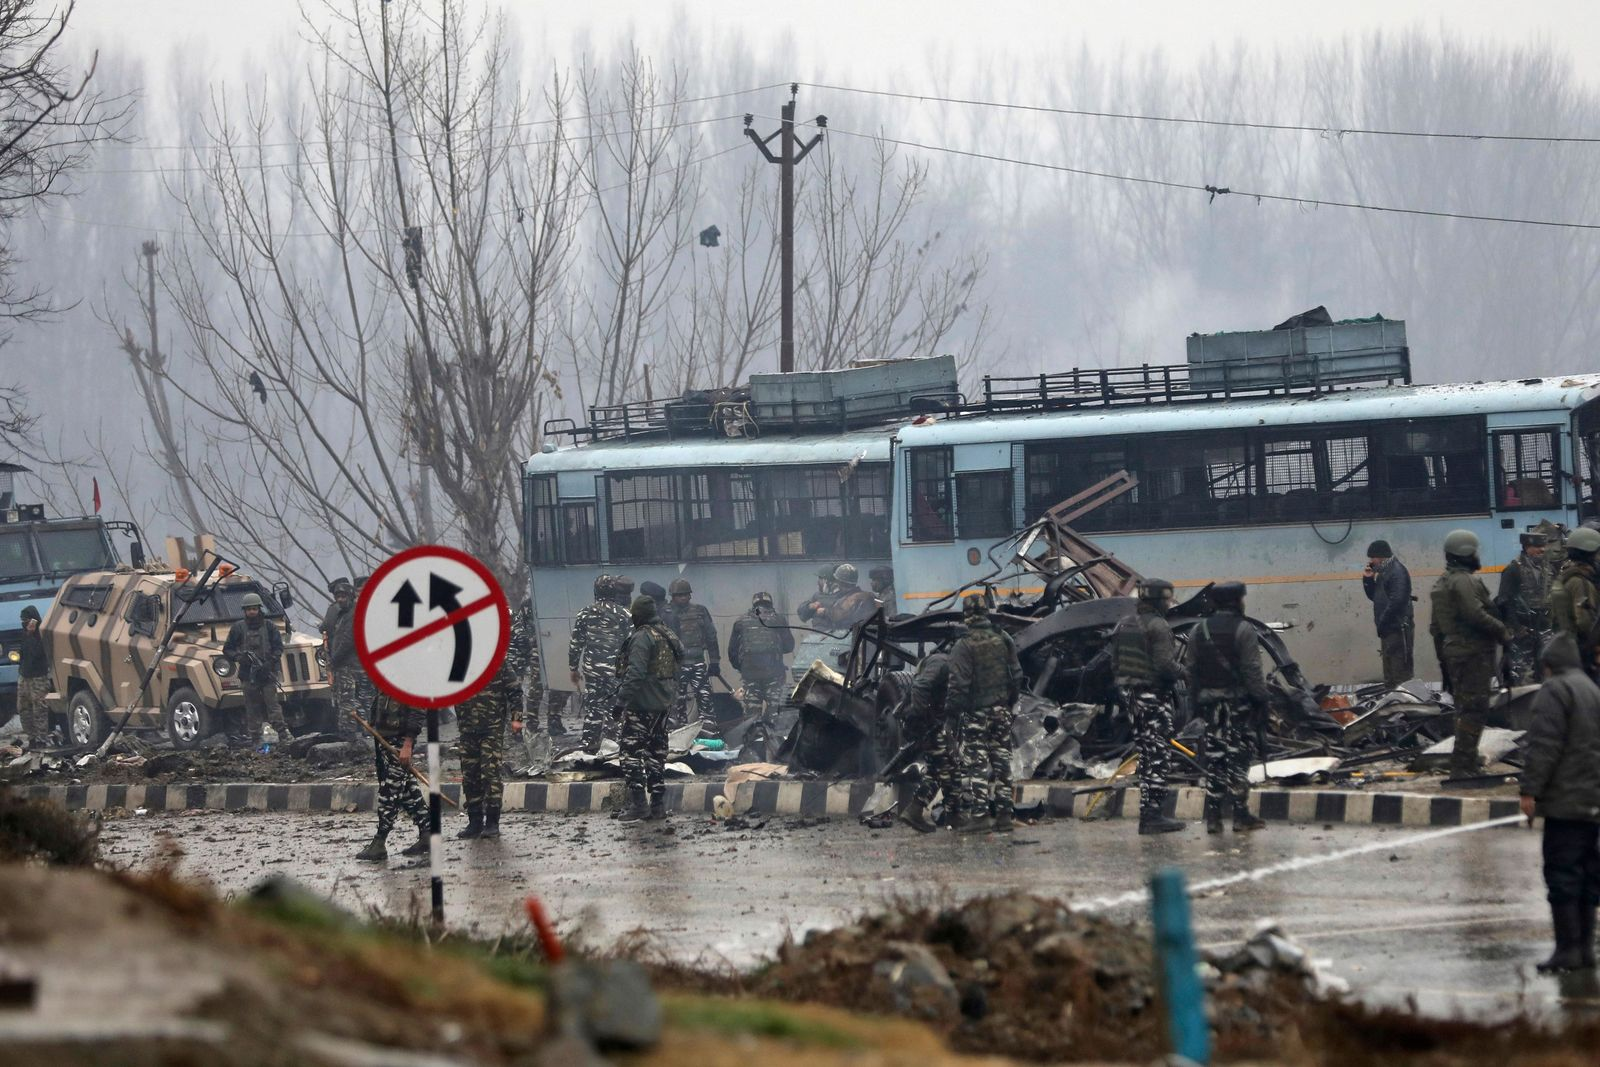 Indian paramilitary soldiers stand by the wreckage of a bus after an explosion in Pampore, Indian-controlled Kashmir, Thursday, Feb. 14, 2019.{ } (AP Photo/Umer Asif)